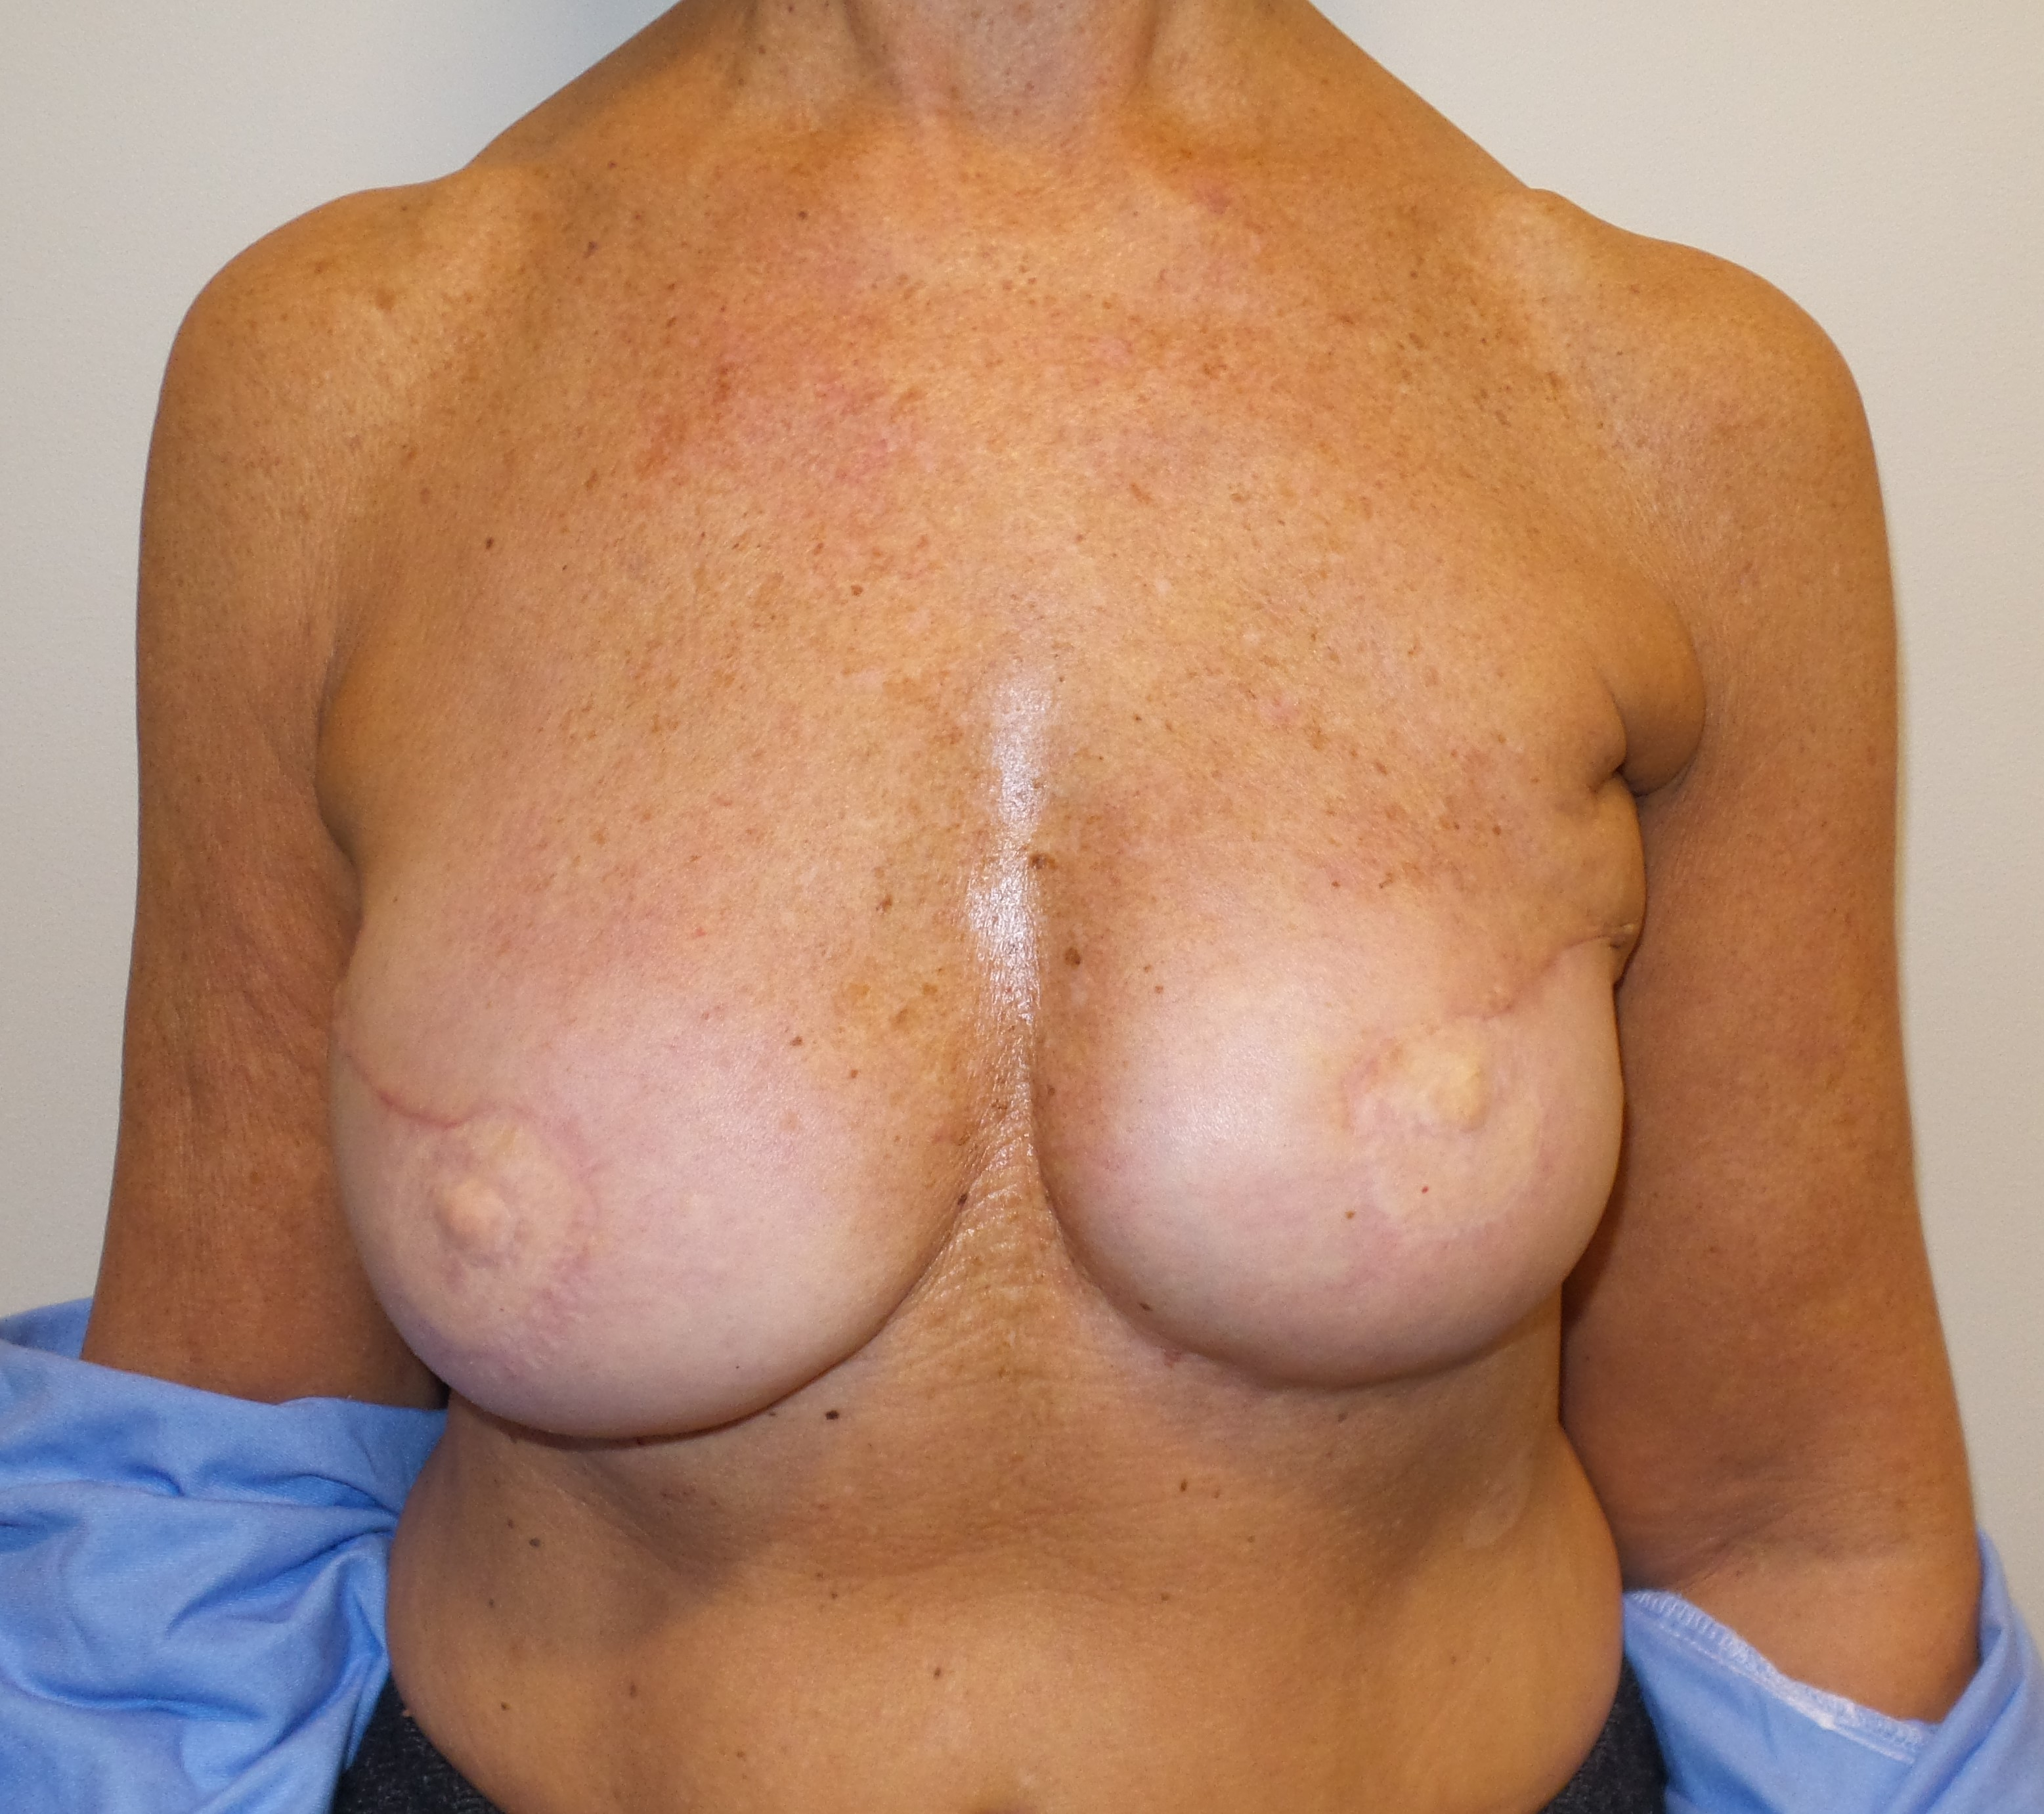 Bilateral DIEP Flaps after Breast Radiation